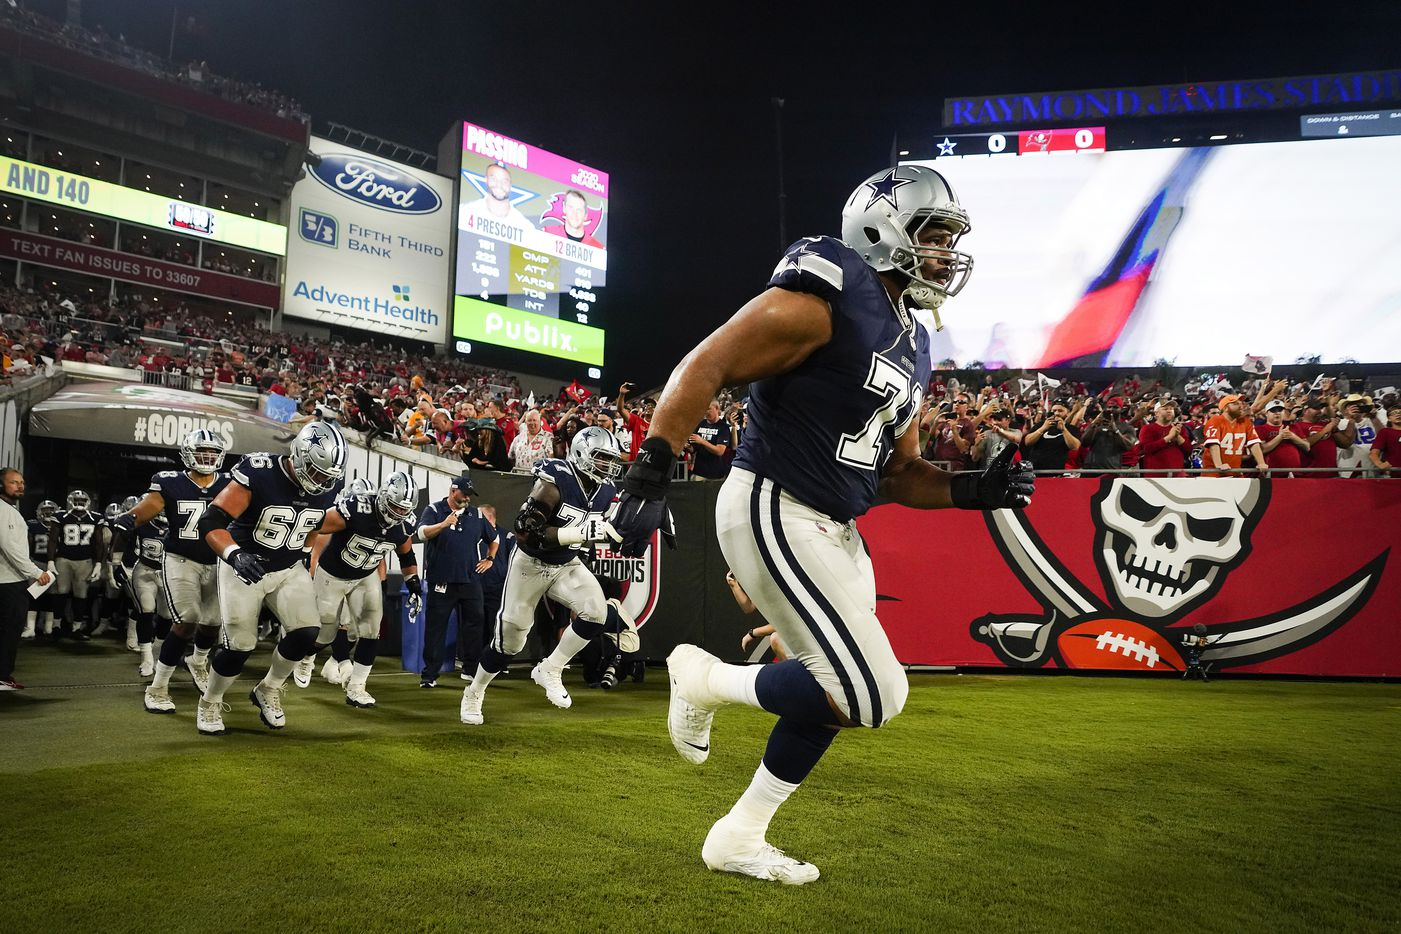 Dallas Cowboys offensive tackle La'el Collins (71) leads teammates onto the field before an NFL football game against the Tampa Bay Buccaneers at Raymond James Stadium on Thursday, Sept. 9, 2021, in Tampa, Fla. (Smiley N. Pool/The Dallas Morning News)